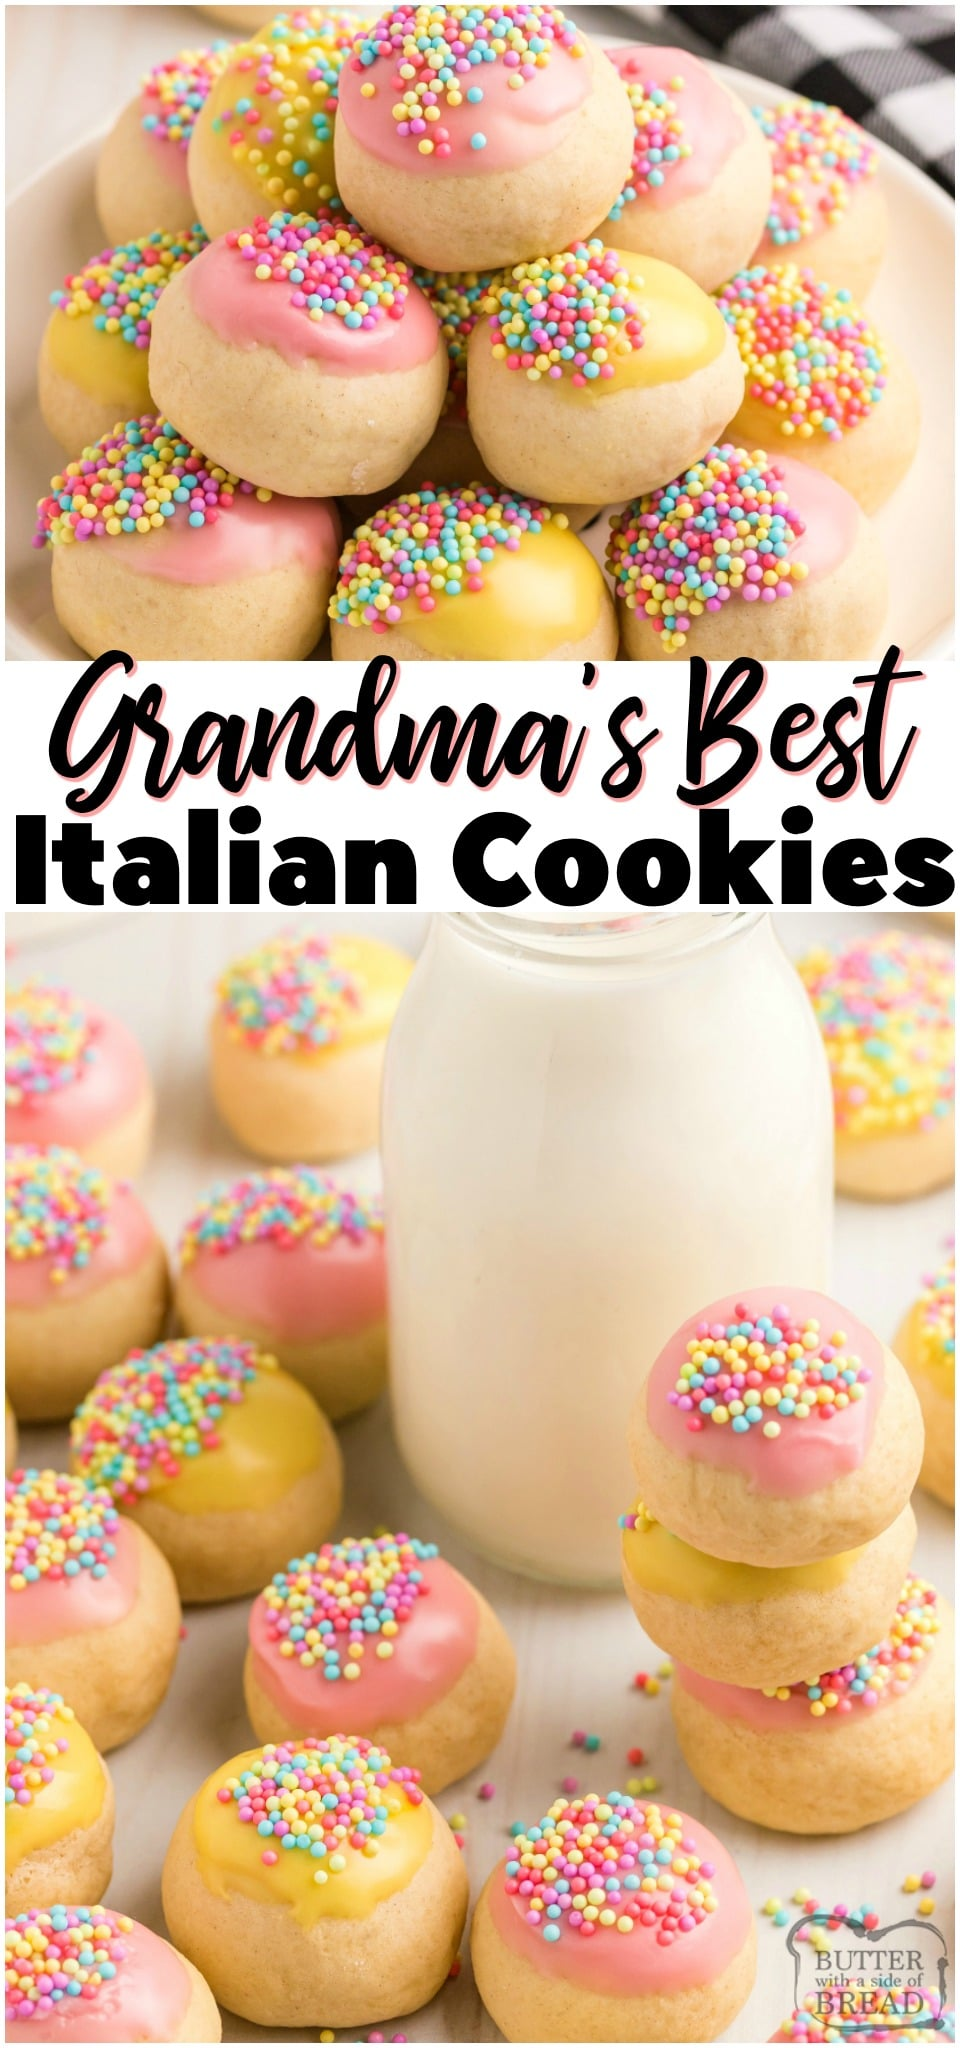 Grandma's Italian cookies with frosting are perfectly sweet and tender cookies with a simple vanilla glaze. Lovely Italian Cookies topped with a sweet glaze and colorful #sprinkles for any occasion! #cookies #Italian #baking #dessert #frosting #sweet #dessert #recipe from BUTTER WITH A SIDE OF BREAD